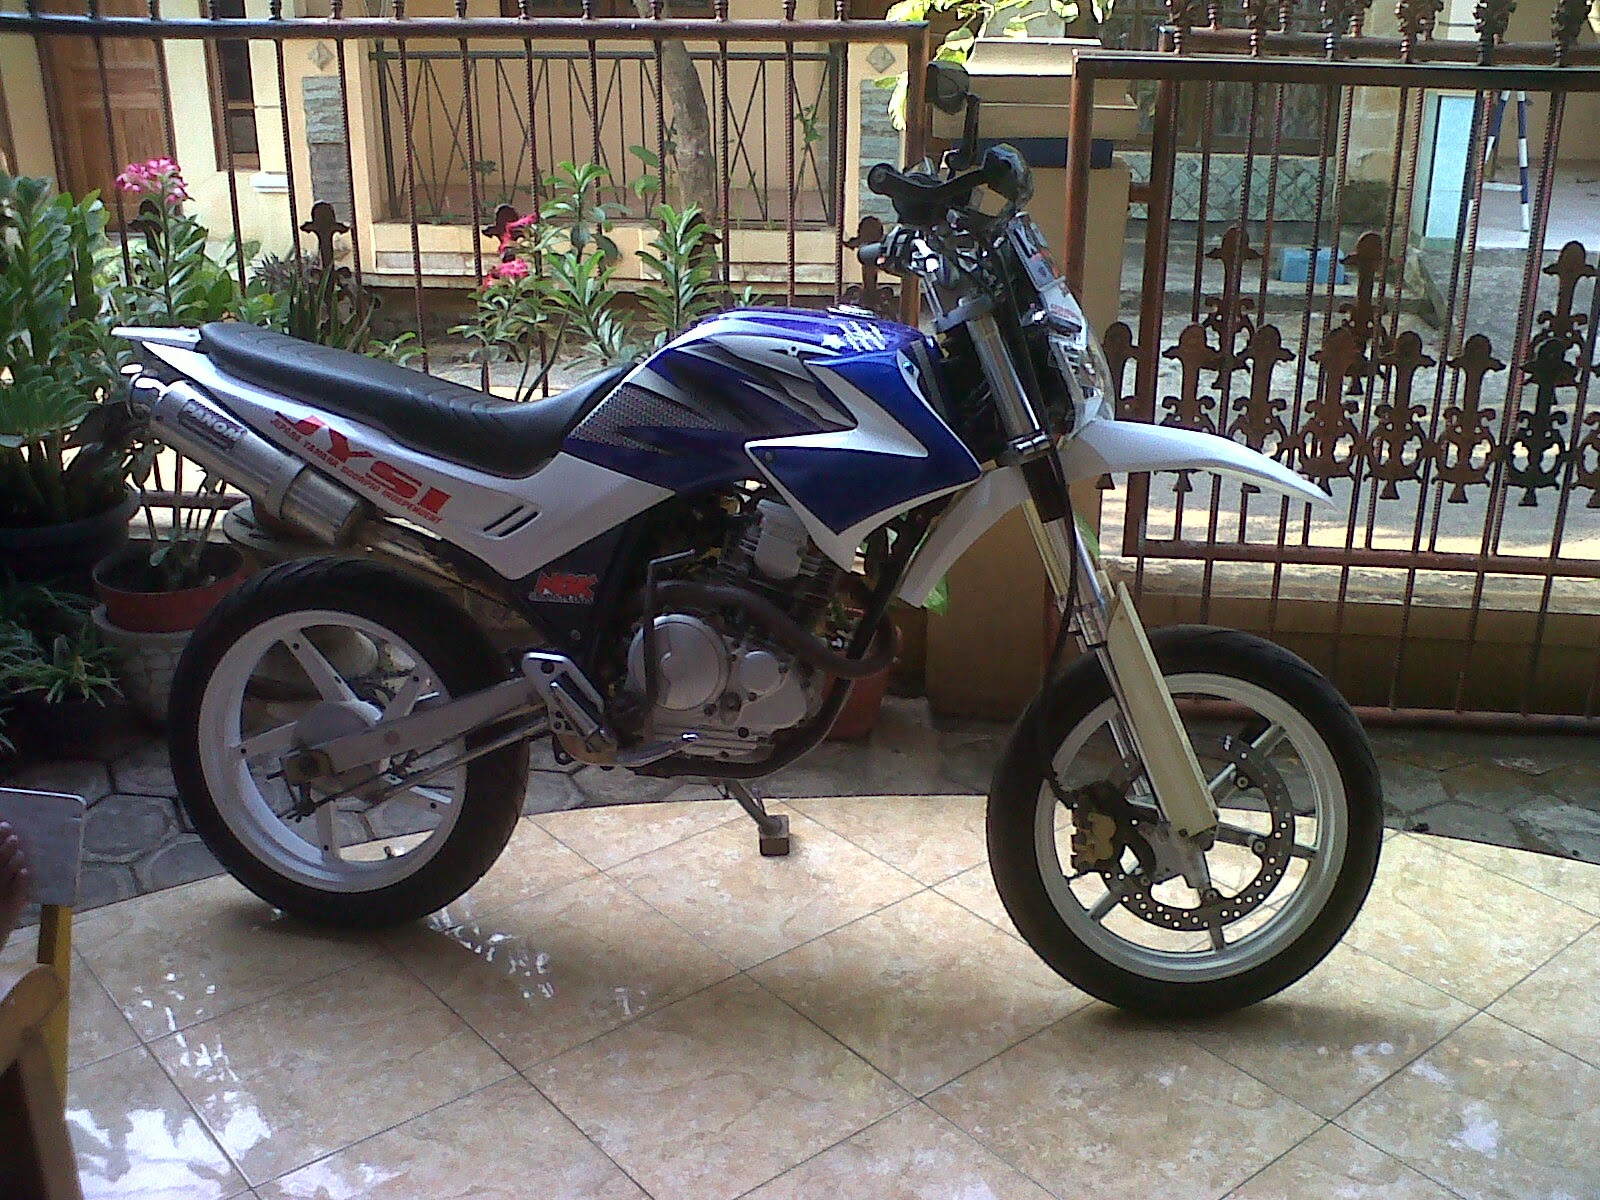 Modifikasi Motor Klx 250 Klx-250-modifikasi-trail-klx